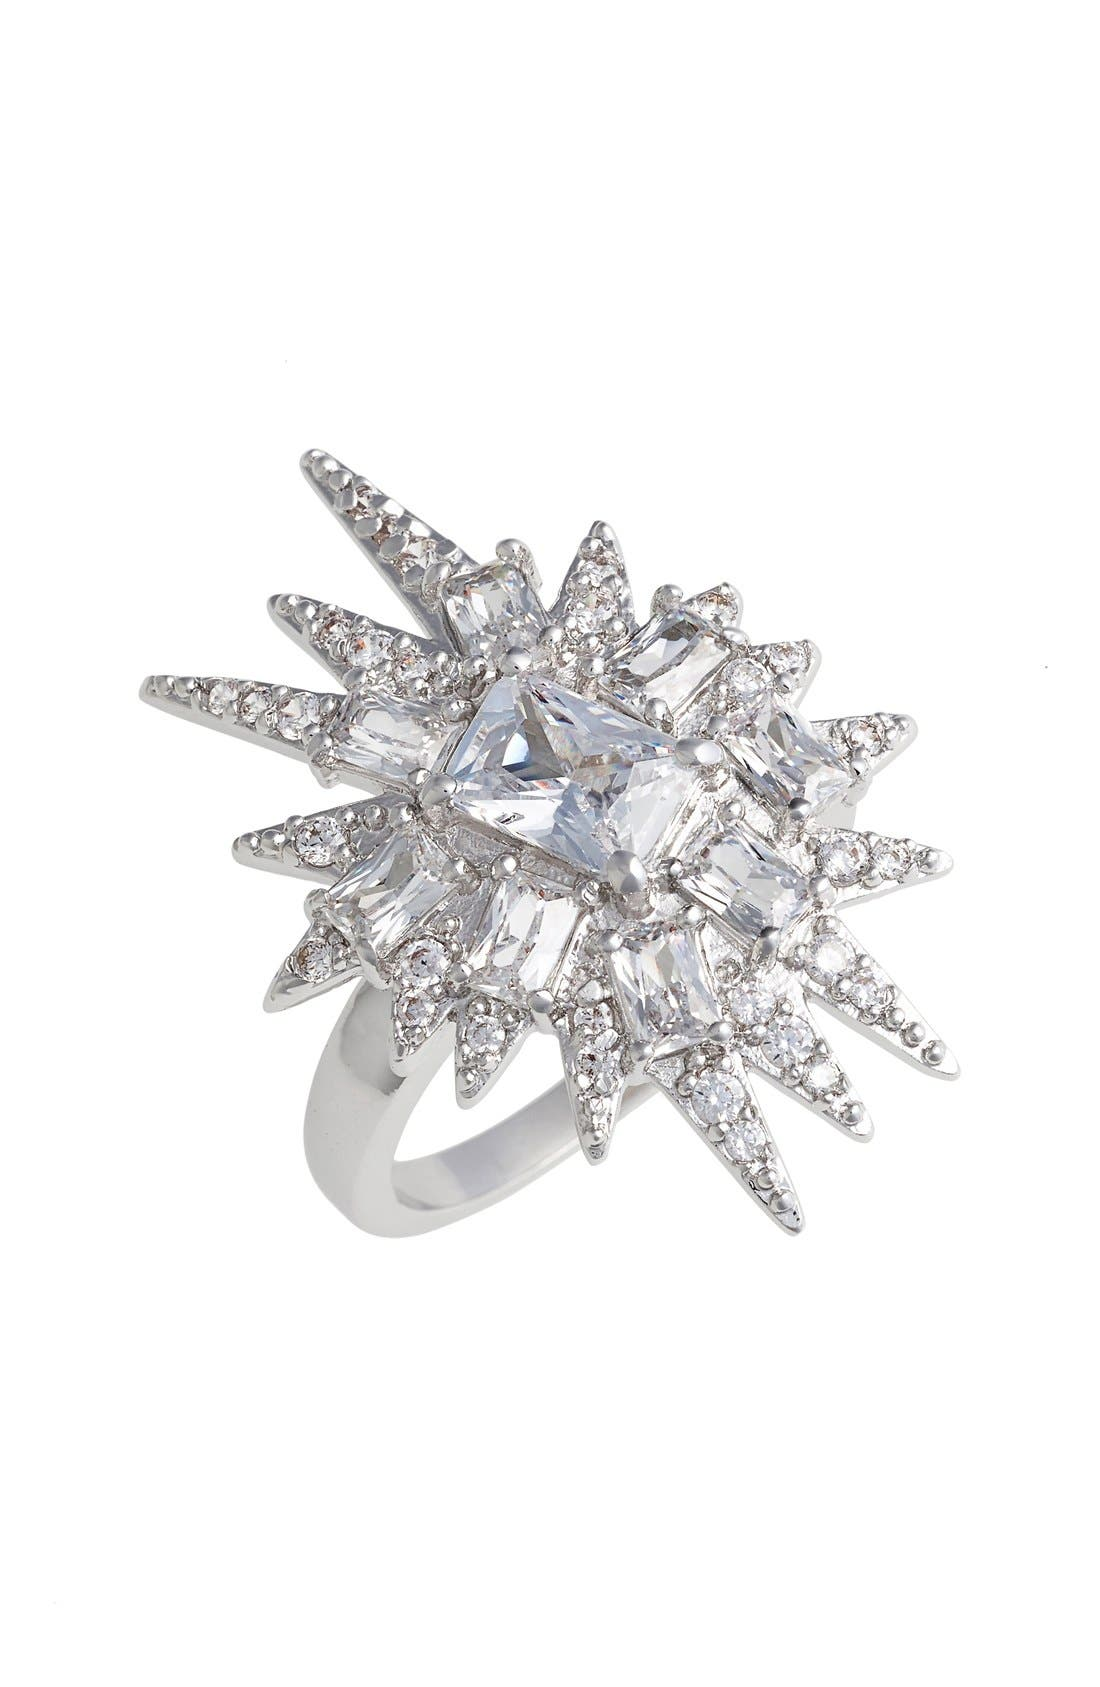 Main Image - CZ by Kenneth Jay Lane 'Explosion' Cubic Zirconia Cocktail Ring